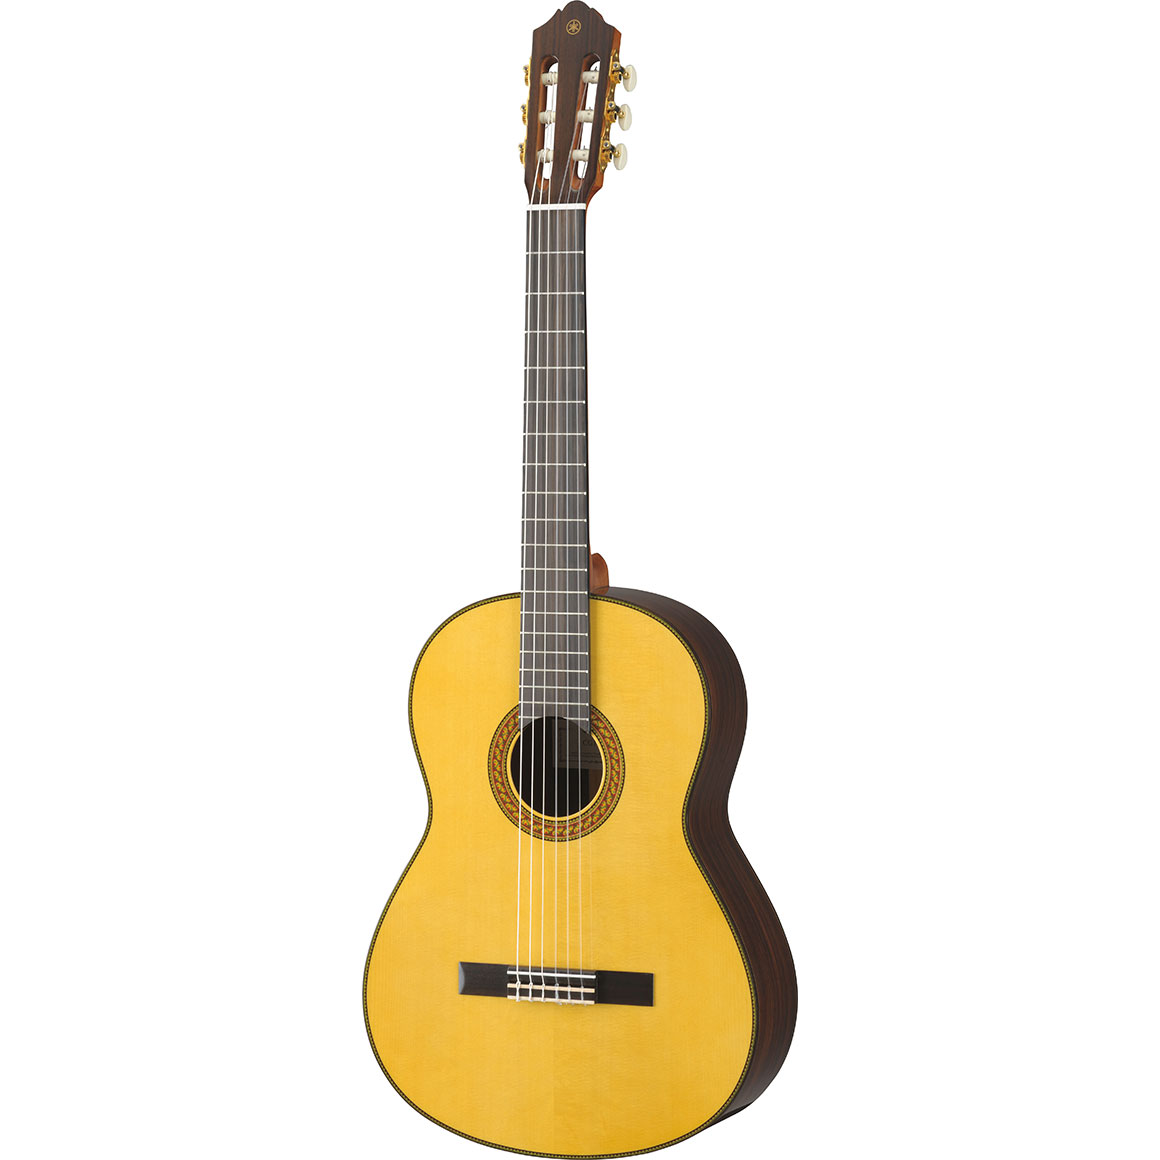 Image for CG192S - Classical Guitar from Yamaha Music Online Shop